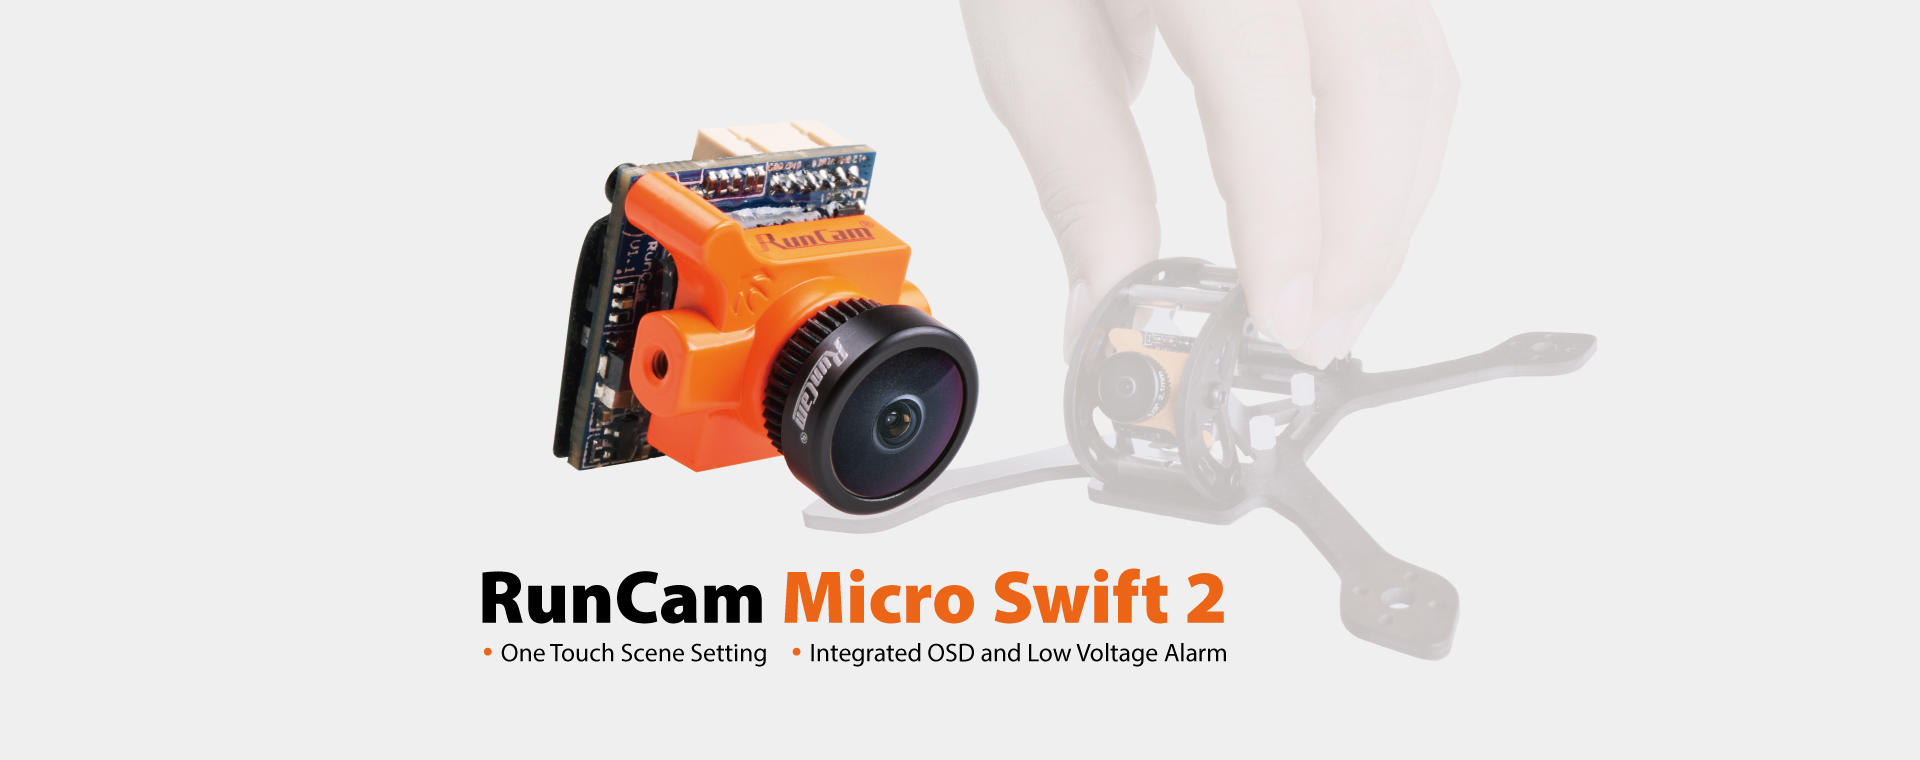 Micro Swift 2 smallest fpv camera - Quadcopters.co.uk